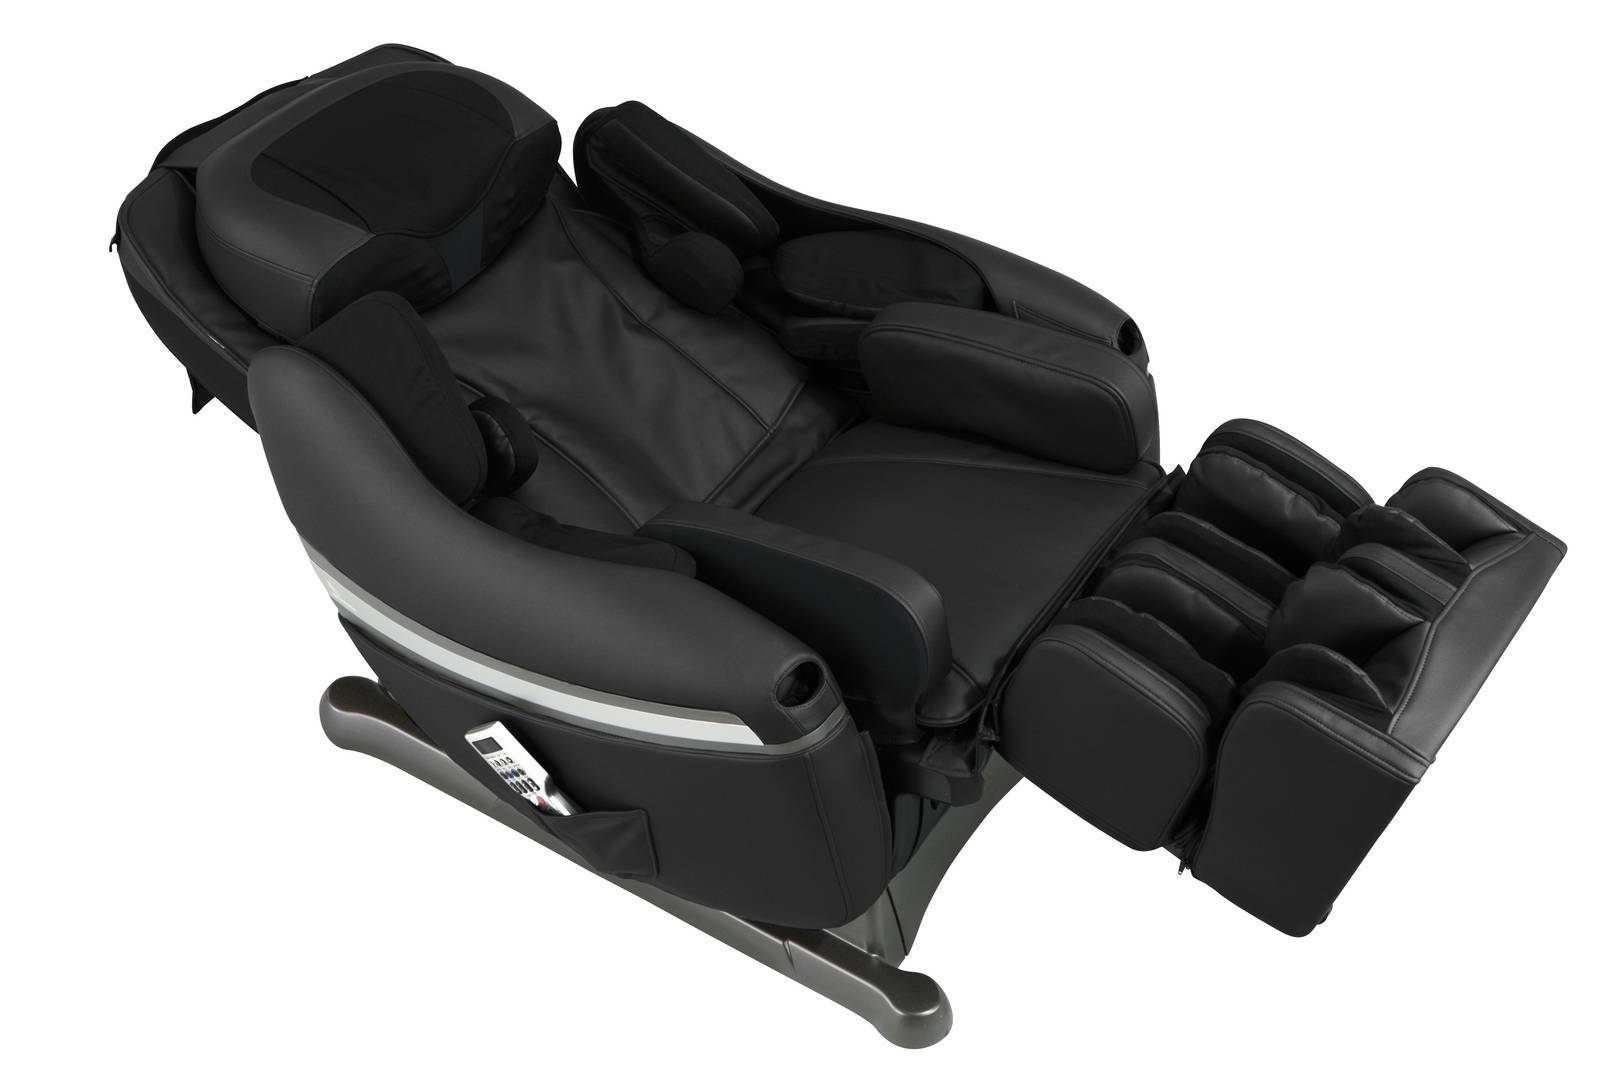 inada dreamwave massage chair previously known as sogno dreamwave